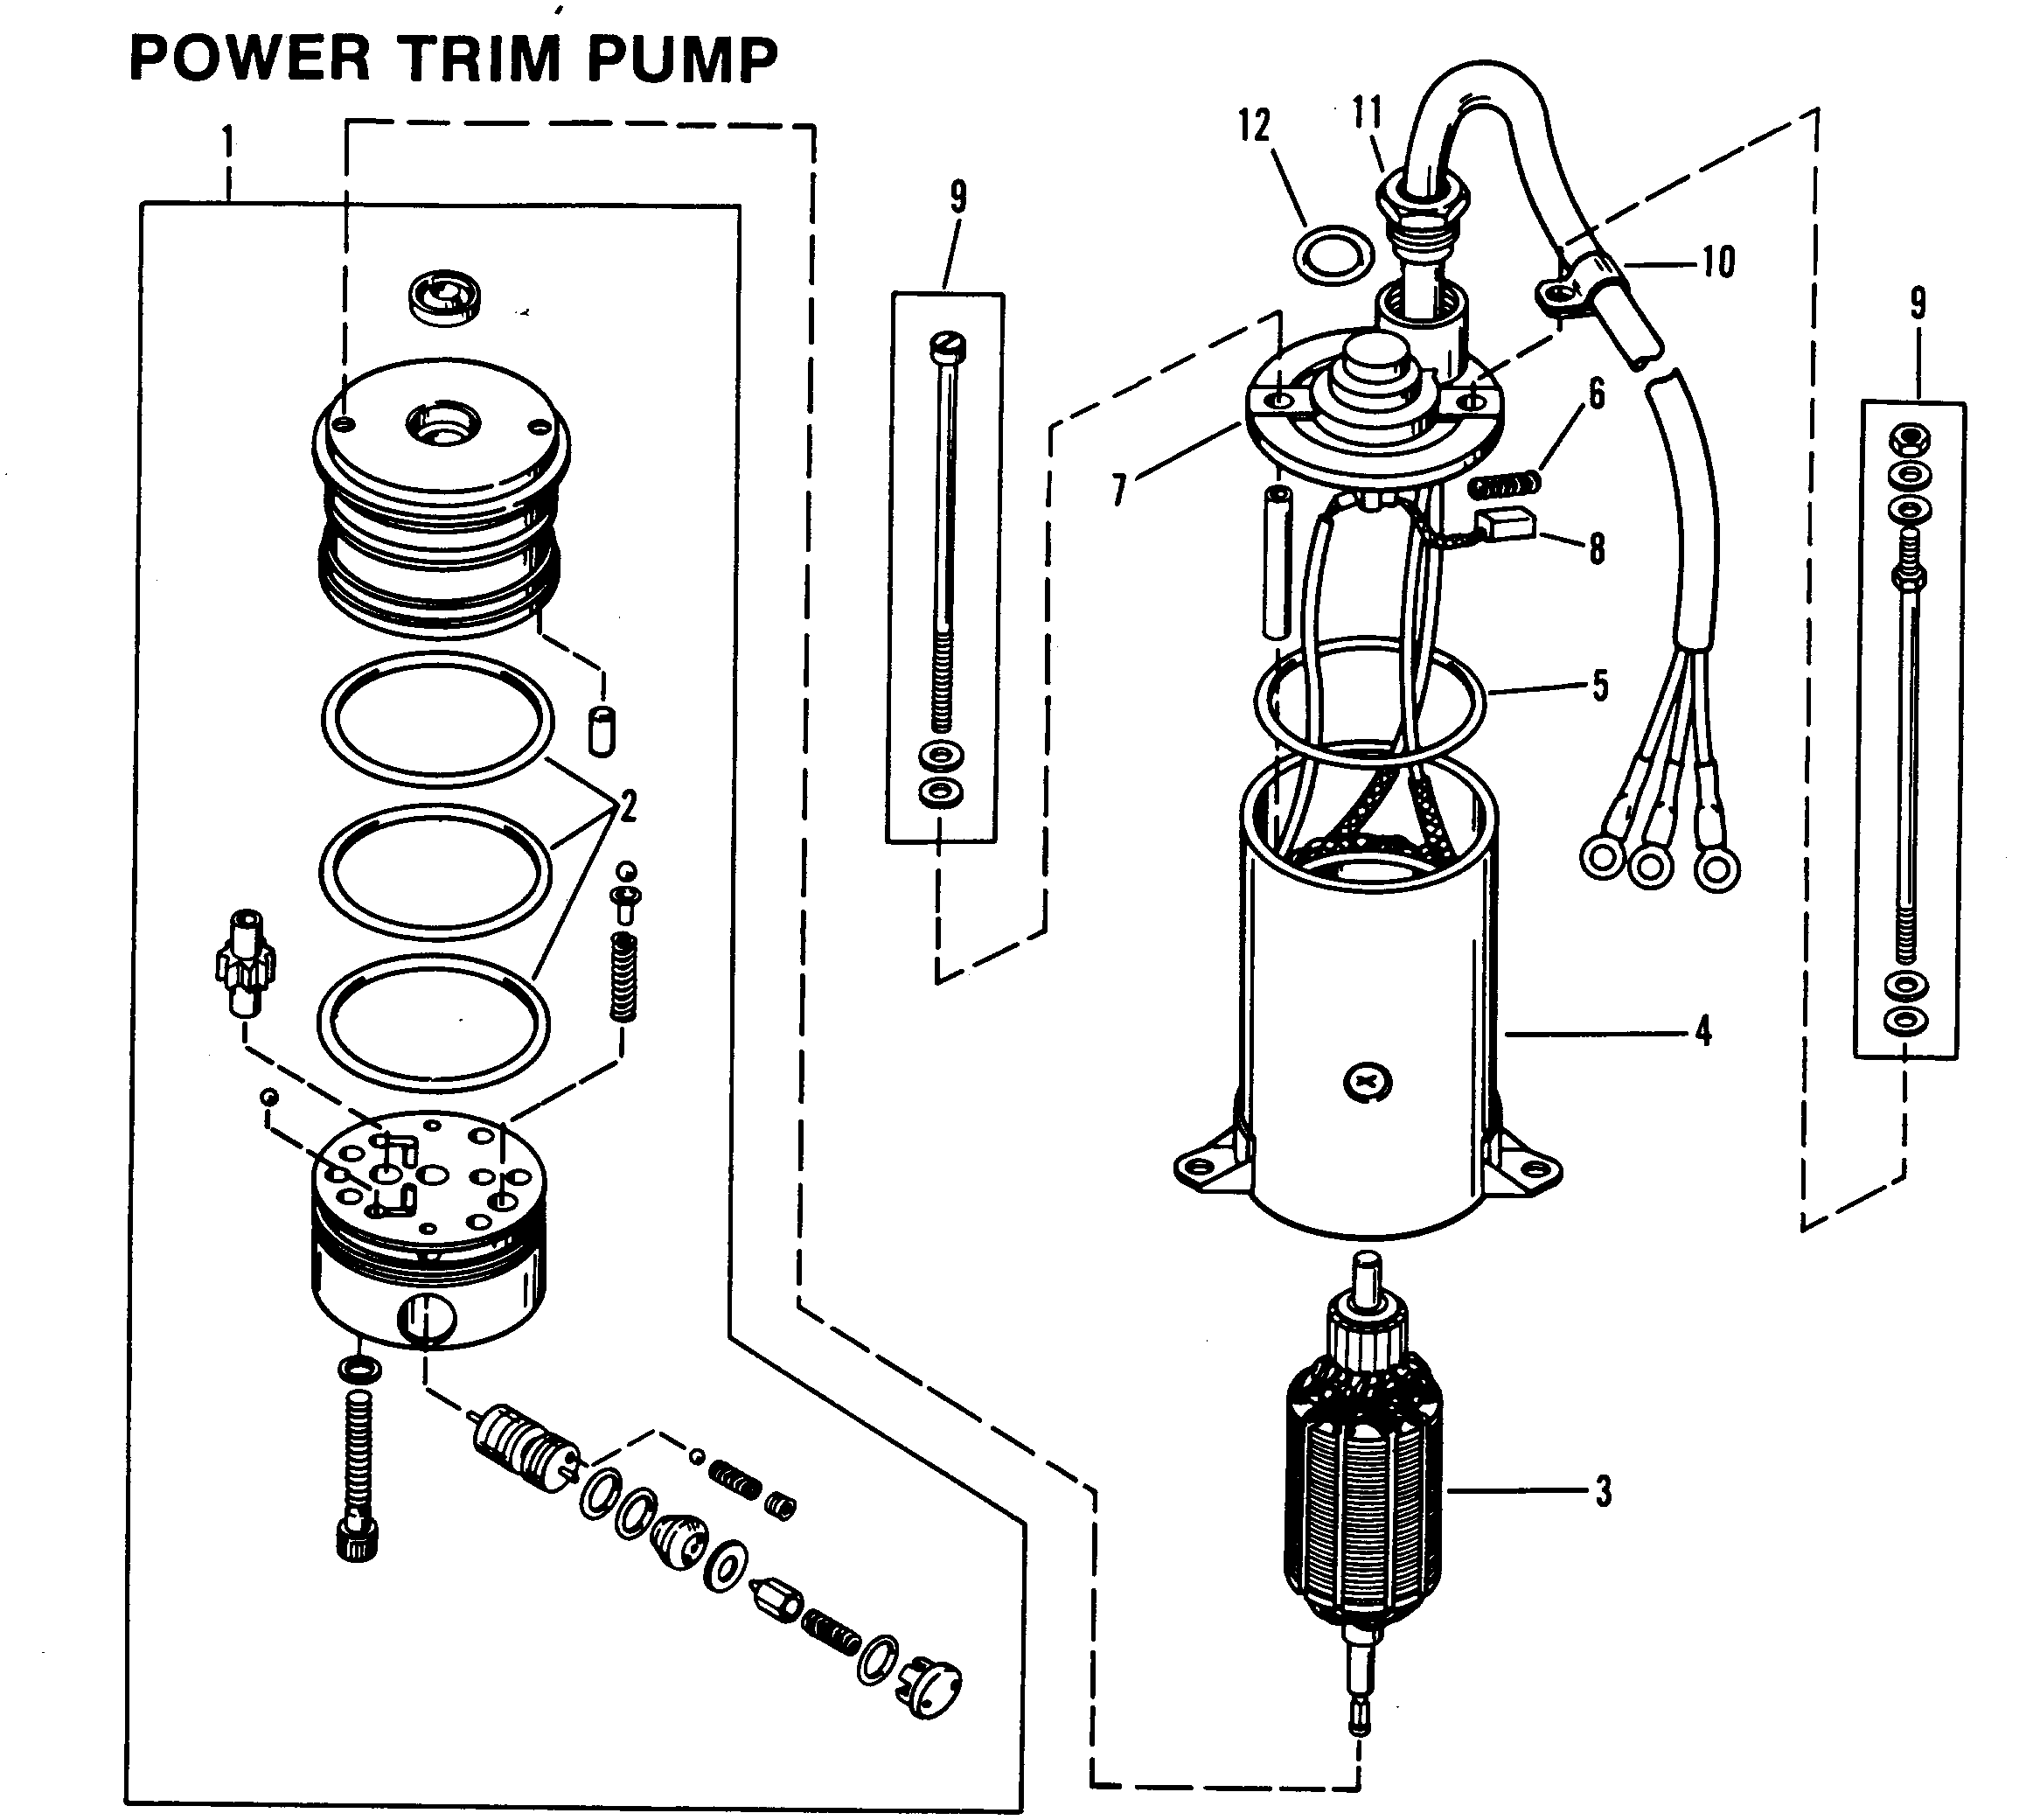 Power Trim  ponents additionally 380976449707264543 further Hydraulic Trim Pump Kit furthermore 53kfn Need Wiring Diagram 2004 4 3l Fuel Pump Power Circuit furthermore 7 5 Hp Mercury Outboard Parts Schematic. on mercruiser power trim wiring diagram